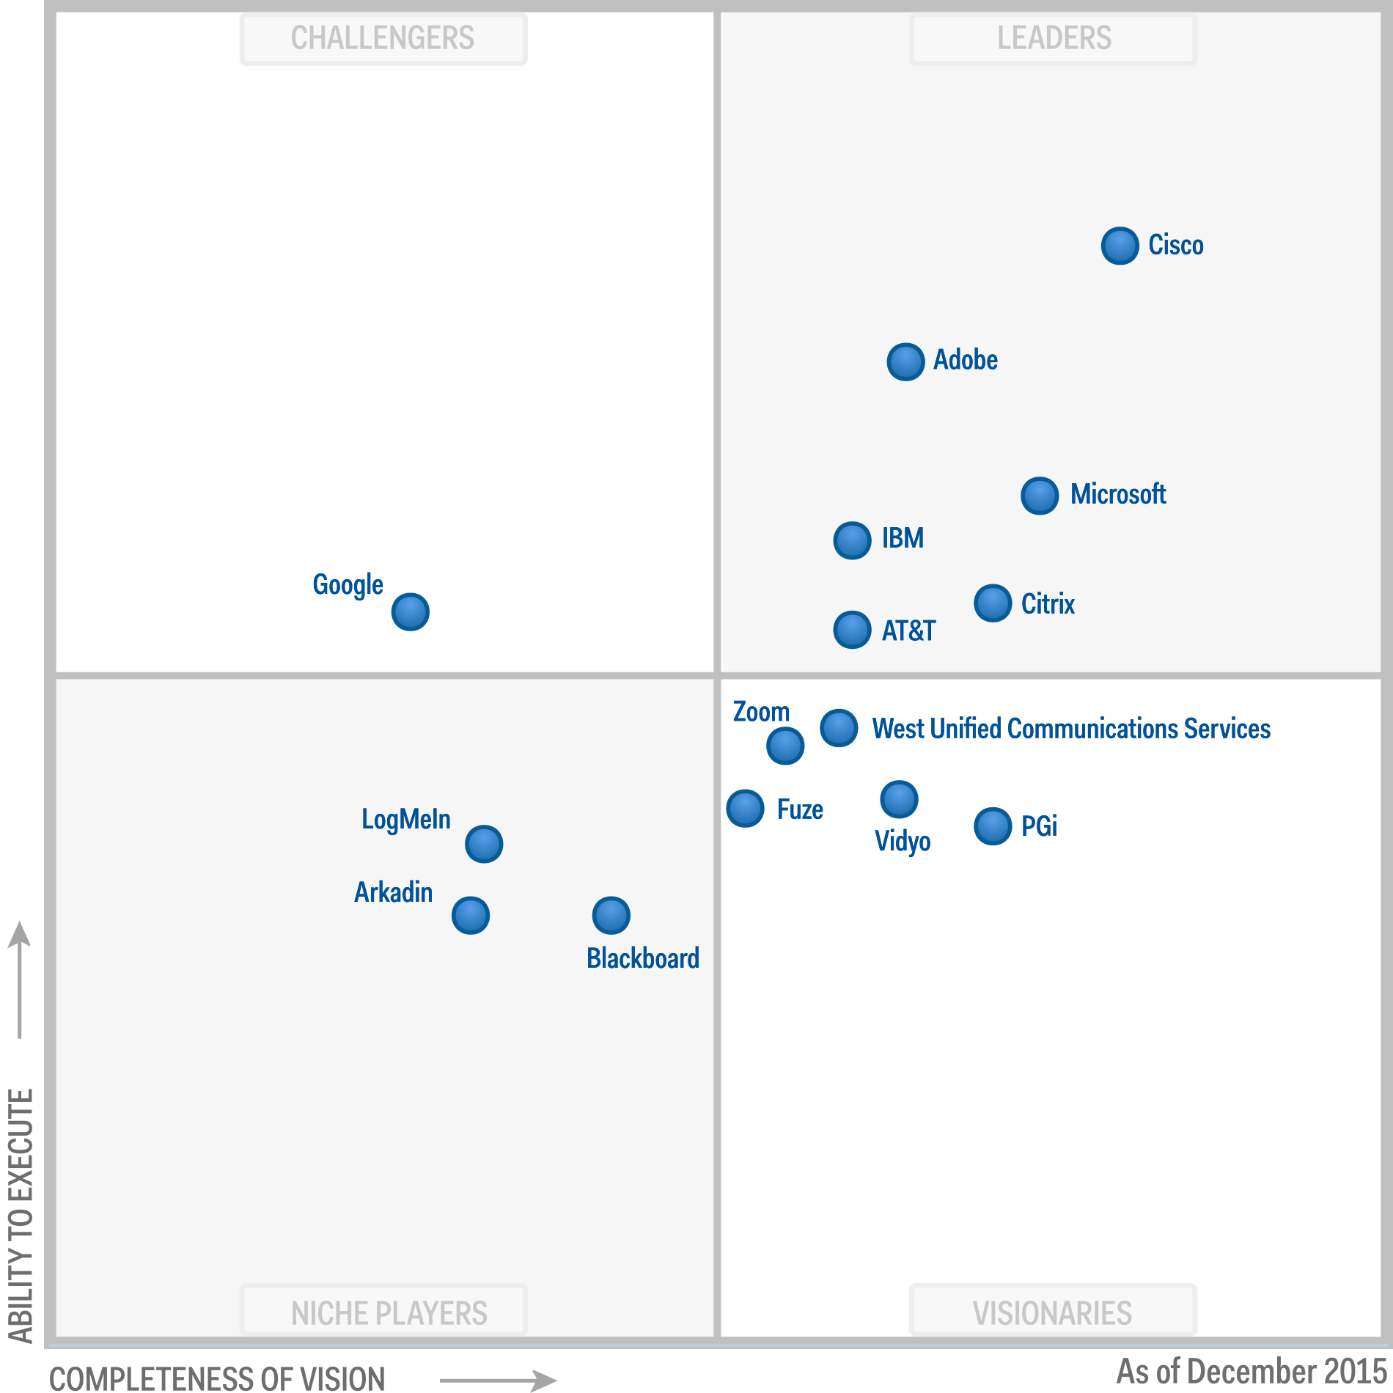 Magic Quadrant for Web Conferencing 2015 (G00273007)